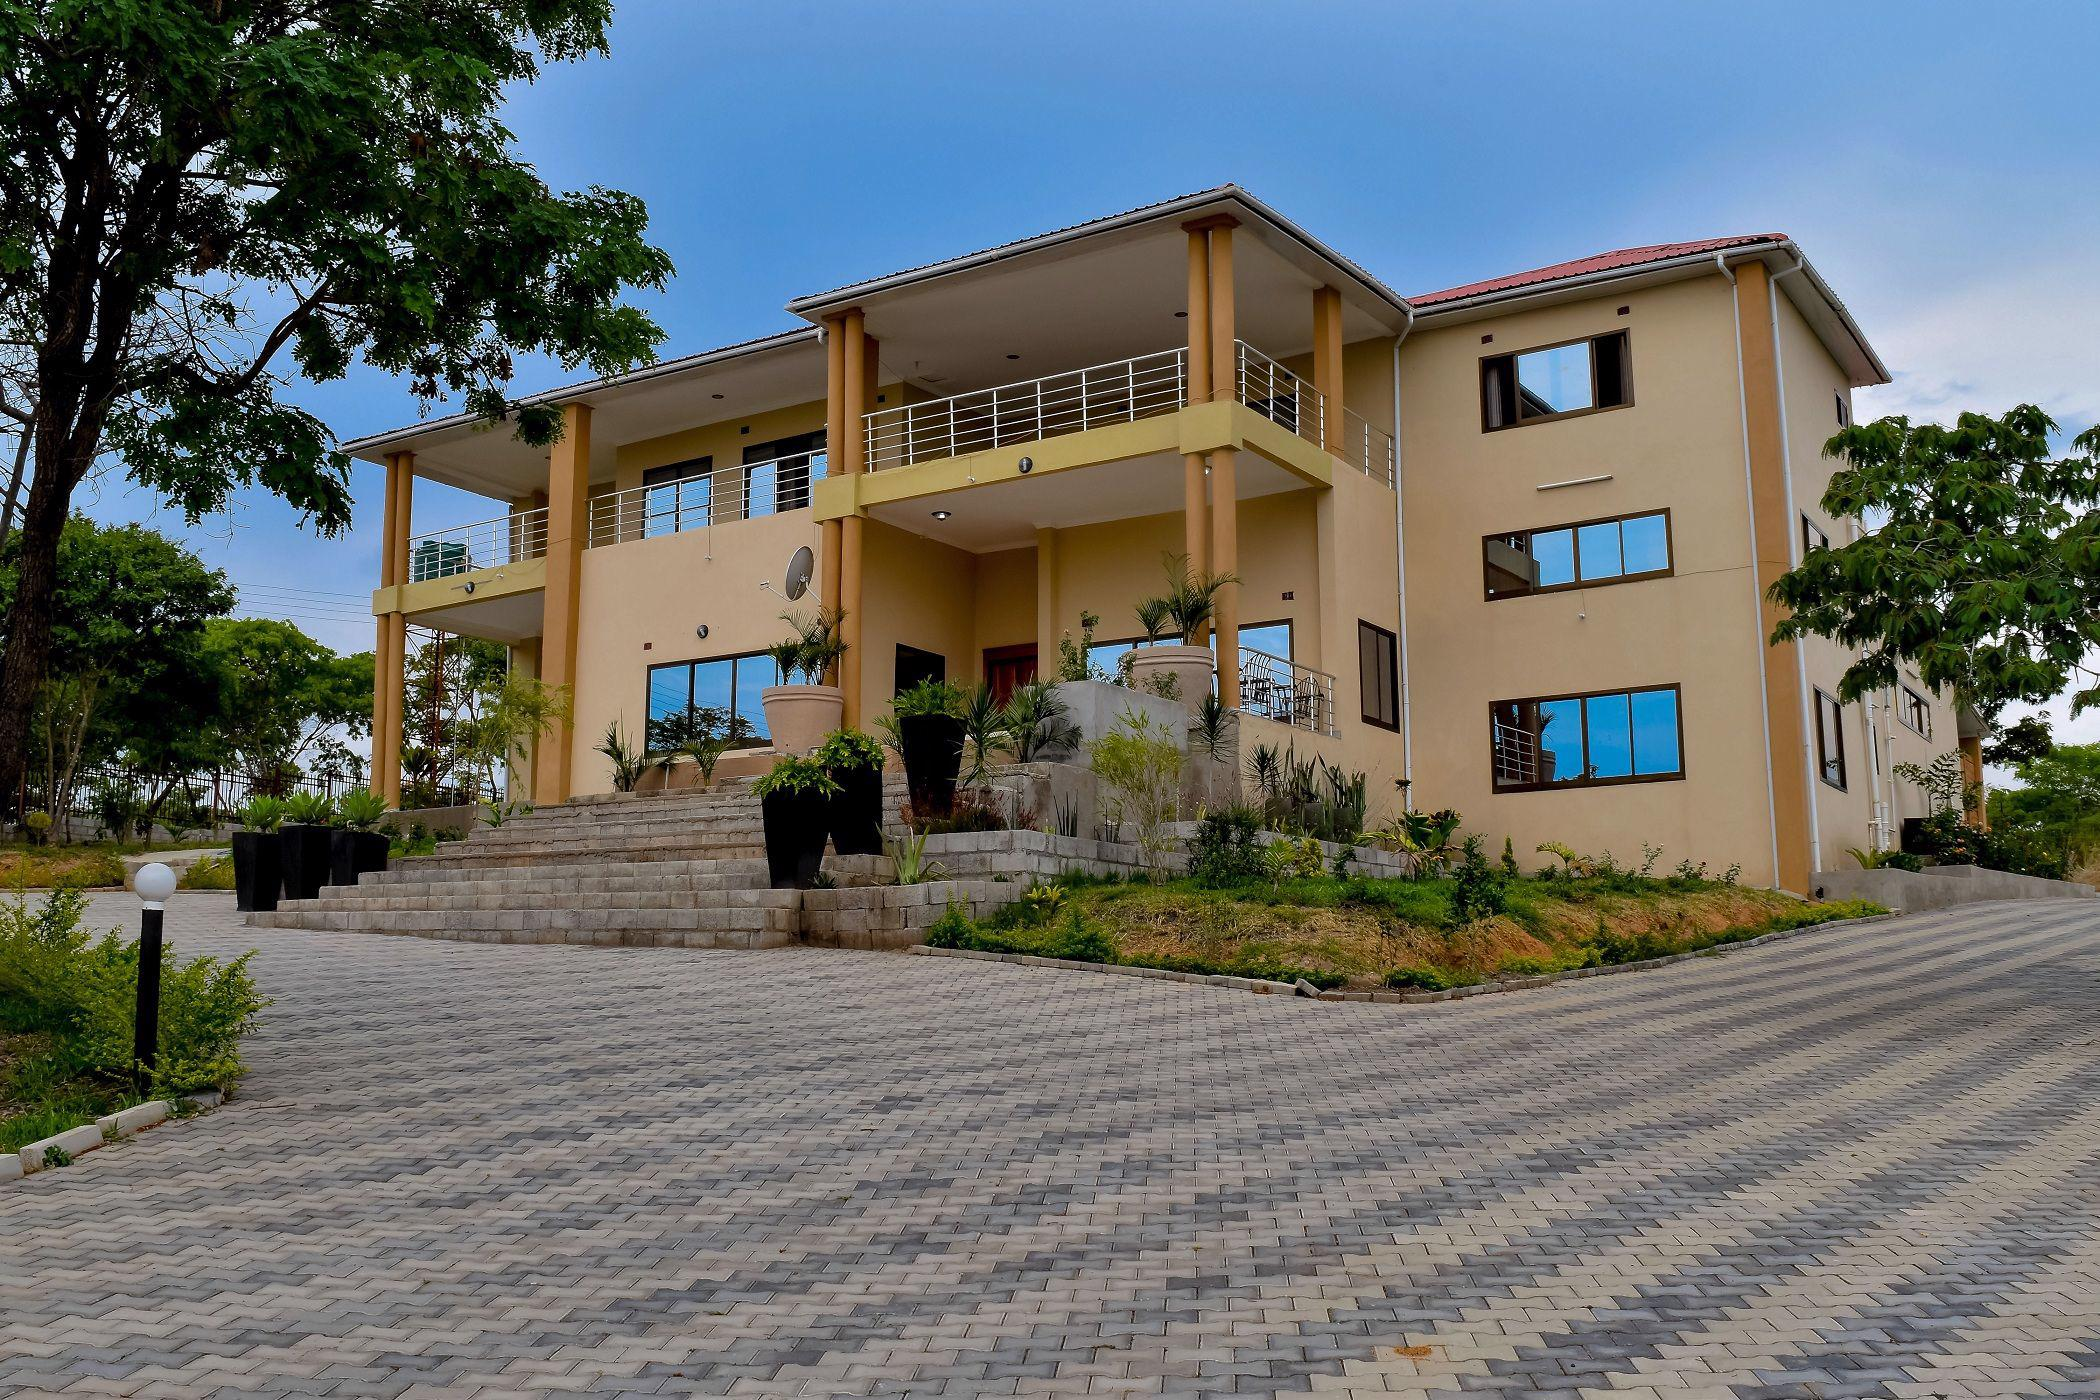 7 bedroom house to rent in Leopards Hill (Zambia)